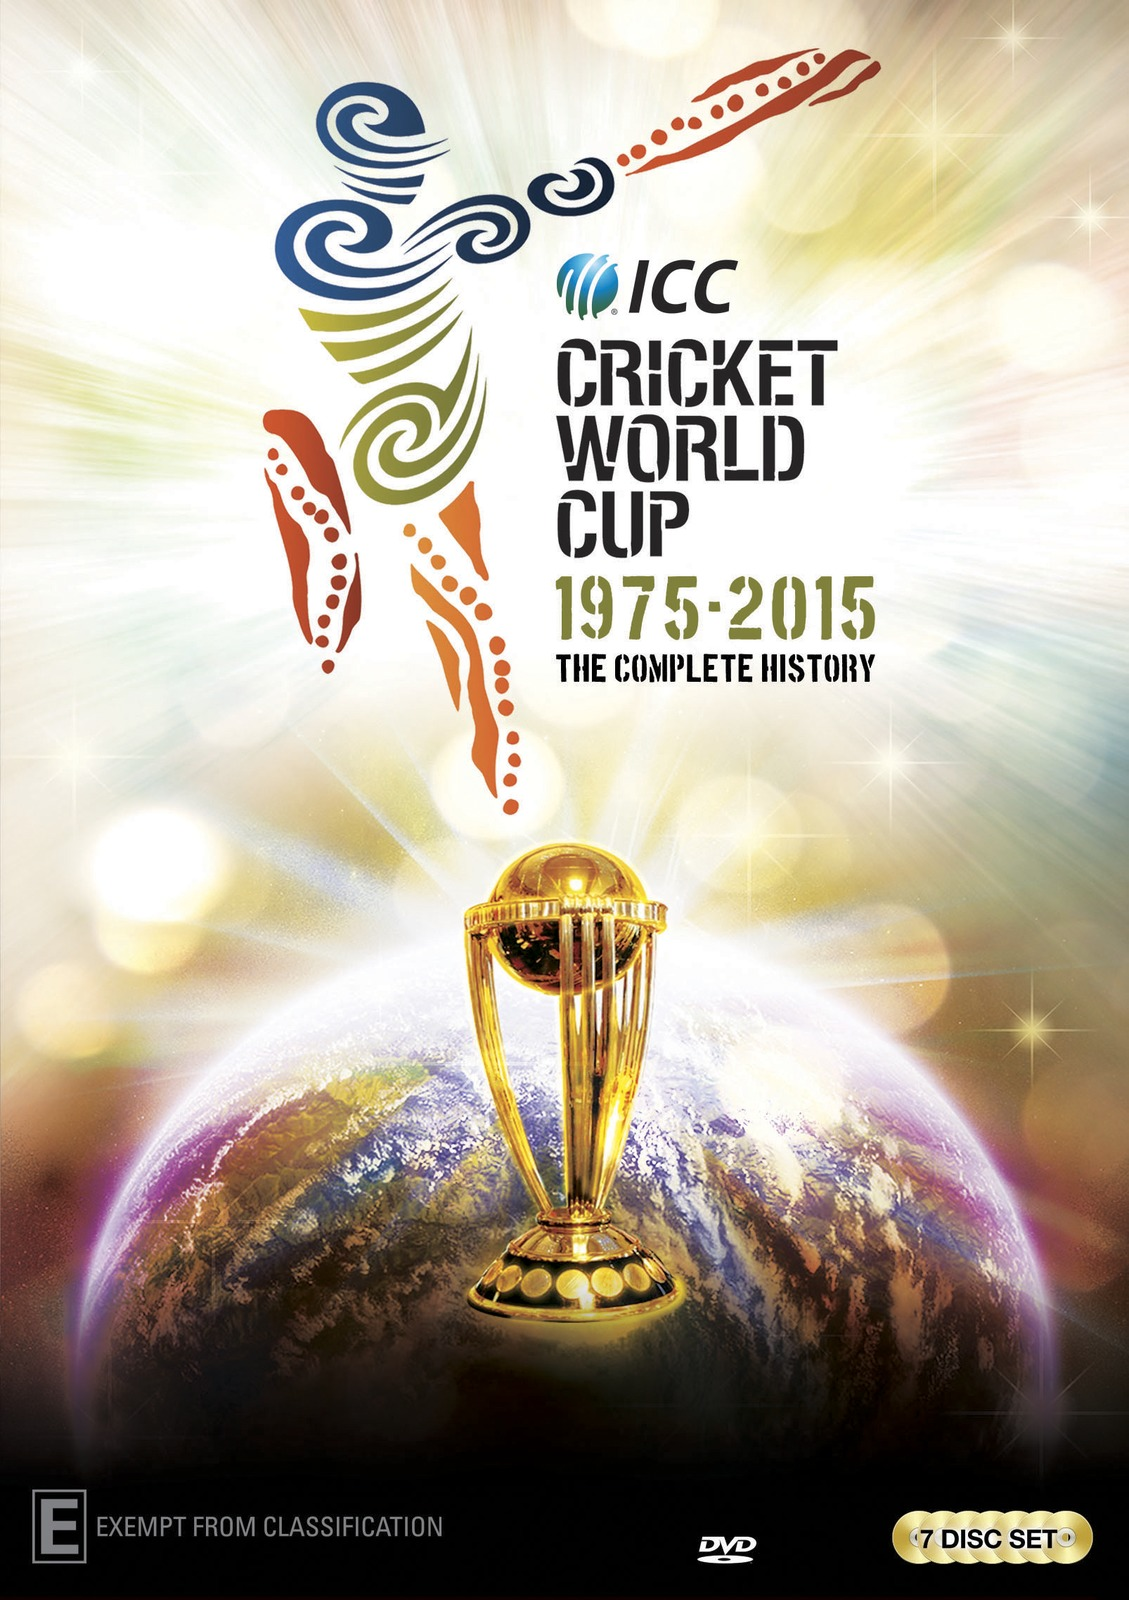 ICC Cricket World Cup: The Complete History on DVD image